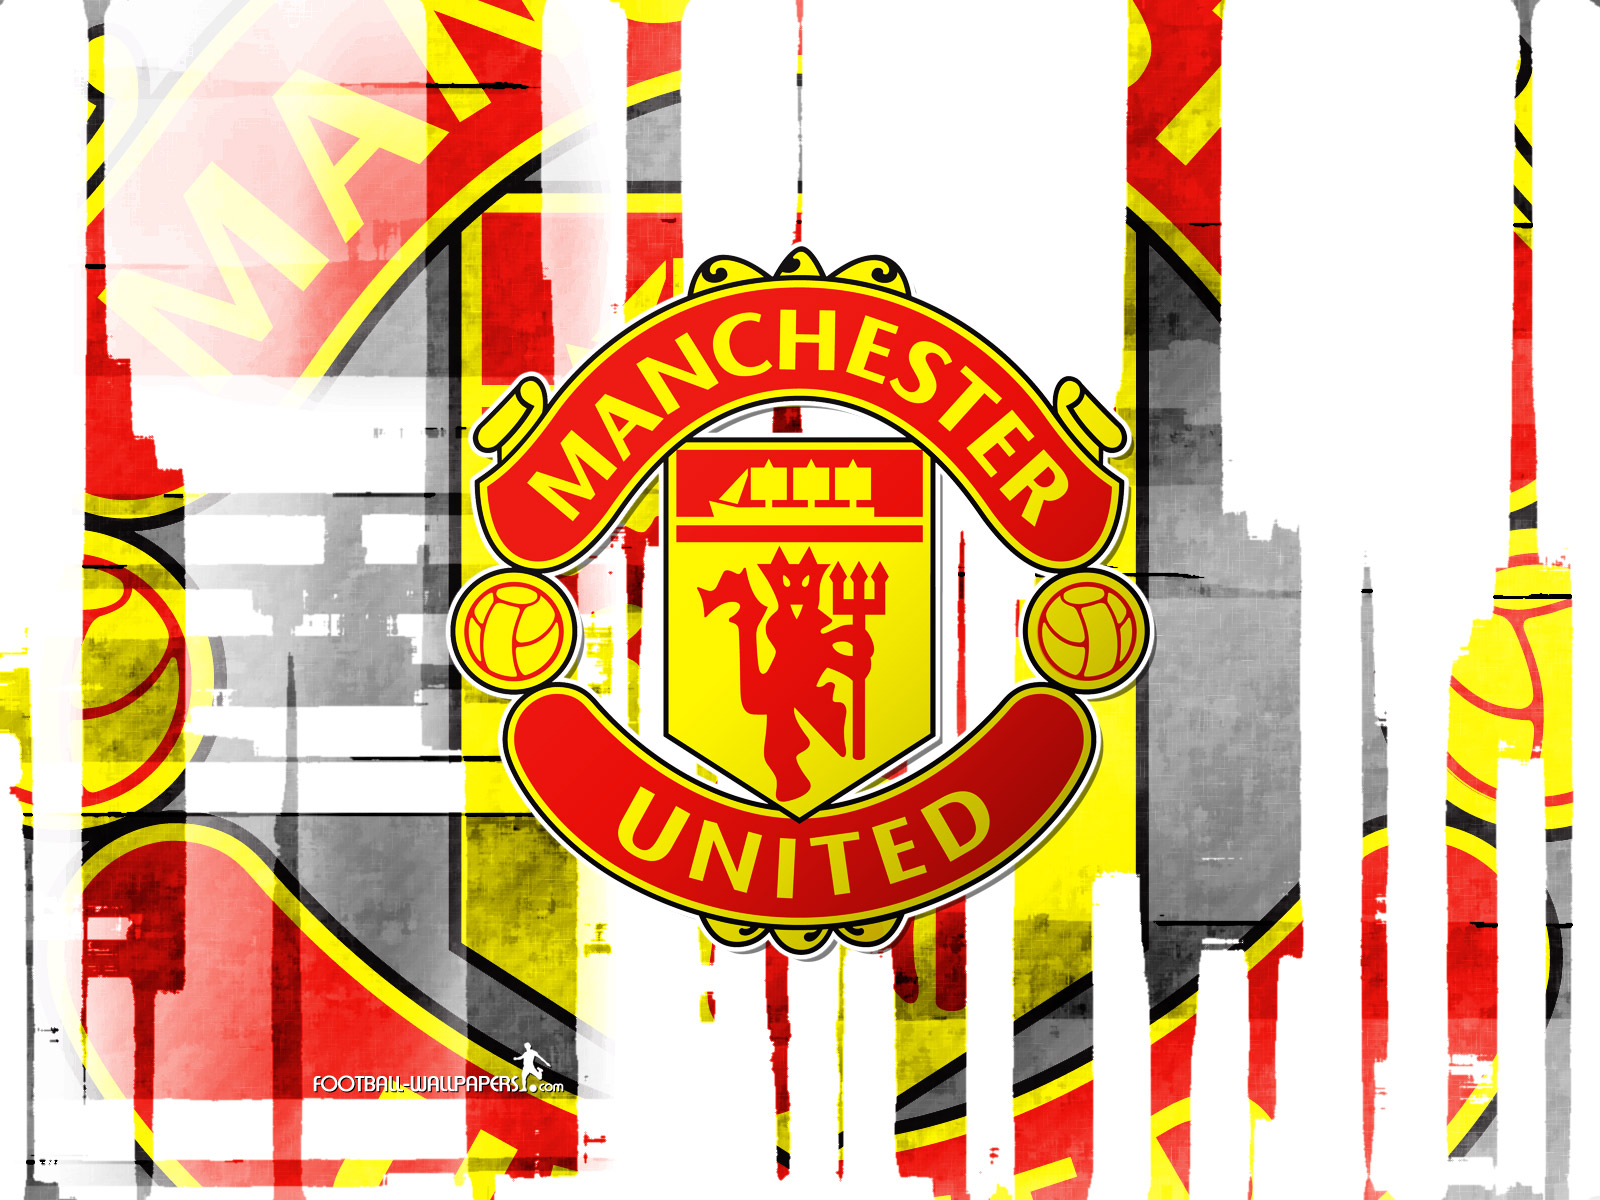 Manchester United FC Wallpaper 2013-14